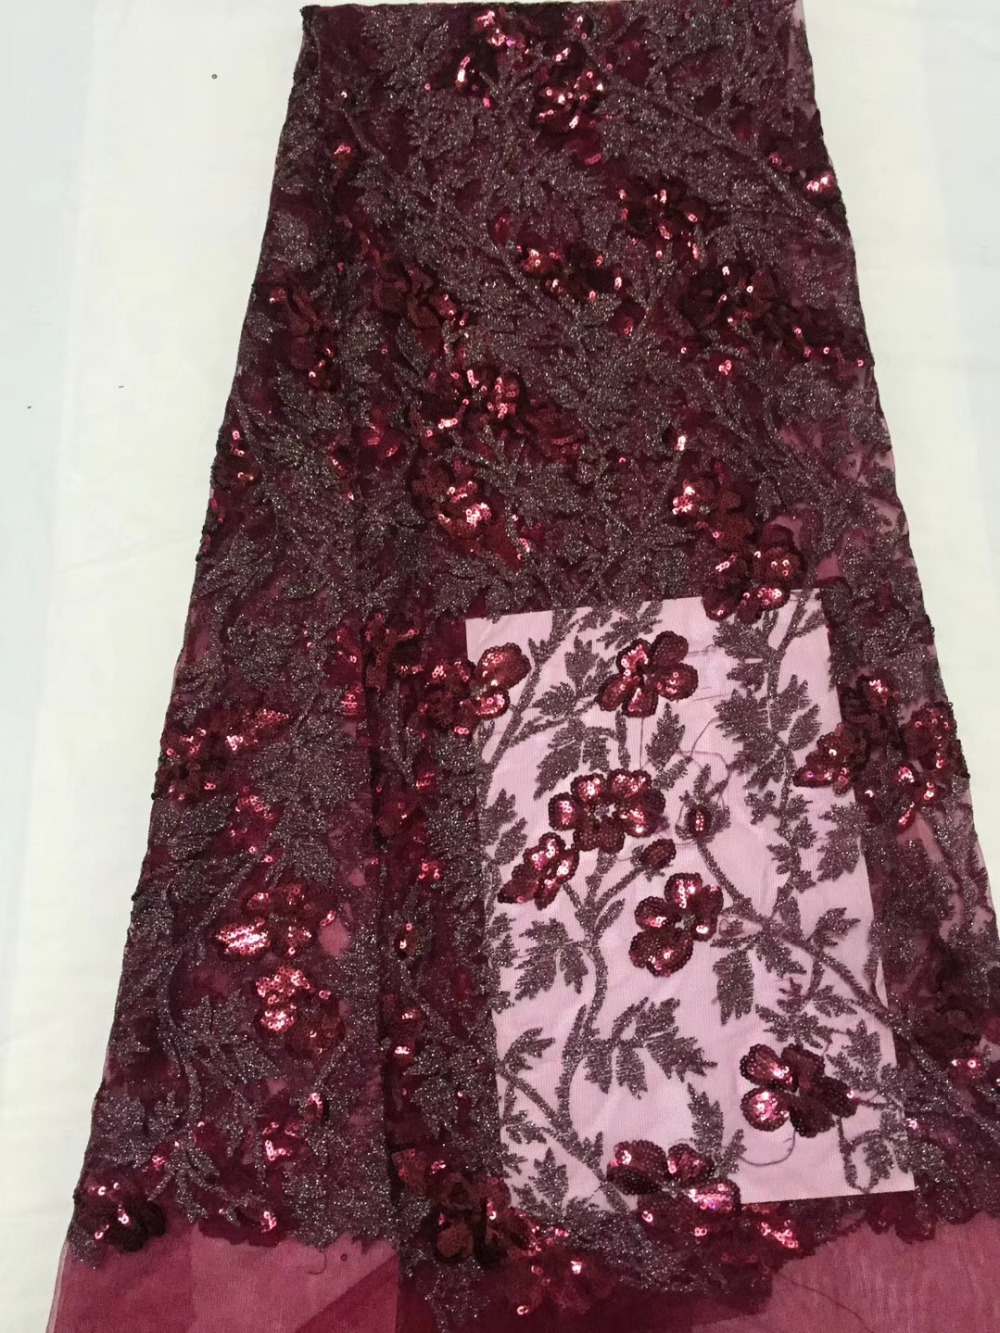 Red Color Nigerian French Lace Fabrics 2018 African Tulle Lace Fabric High Quality African Lace Wedding Fabric For Dress sequinsRed Color Nigerian French Lace Fabrics 2018 African Tulle Lace Fabric High Quality African Lace Wedding Fabric For Dress sequins